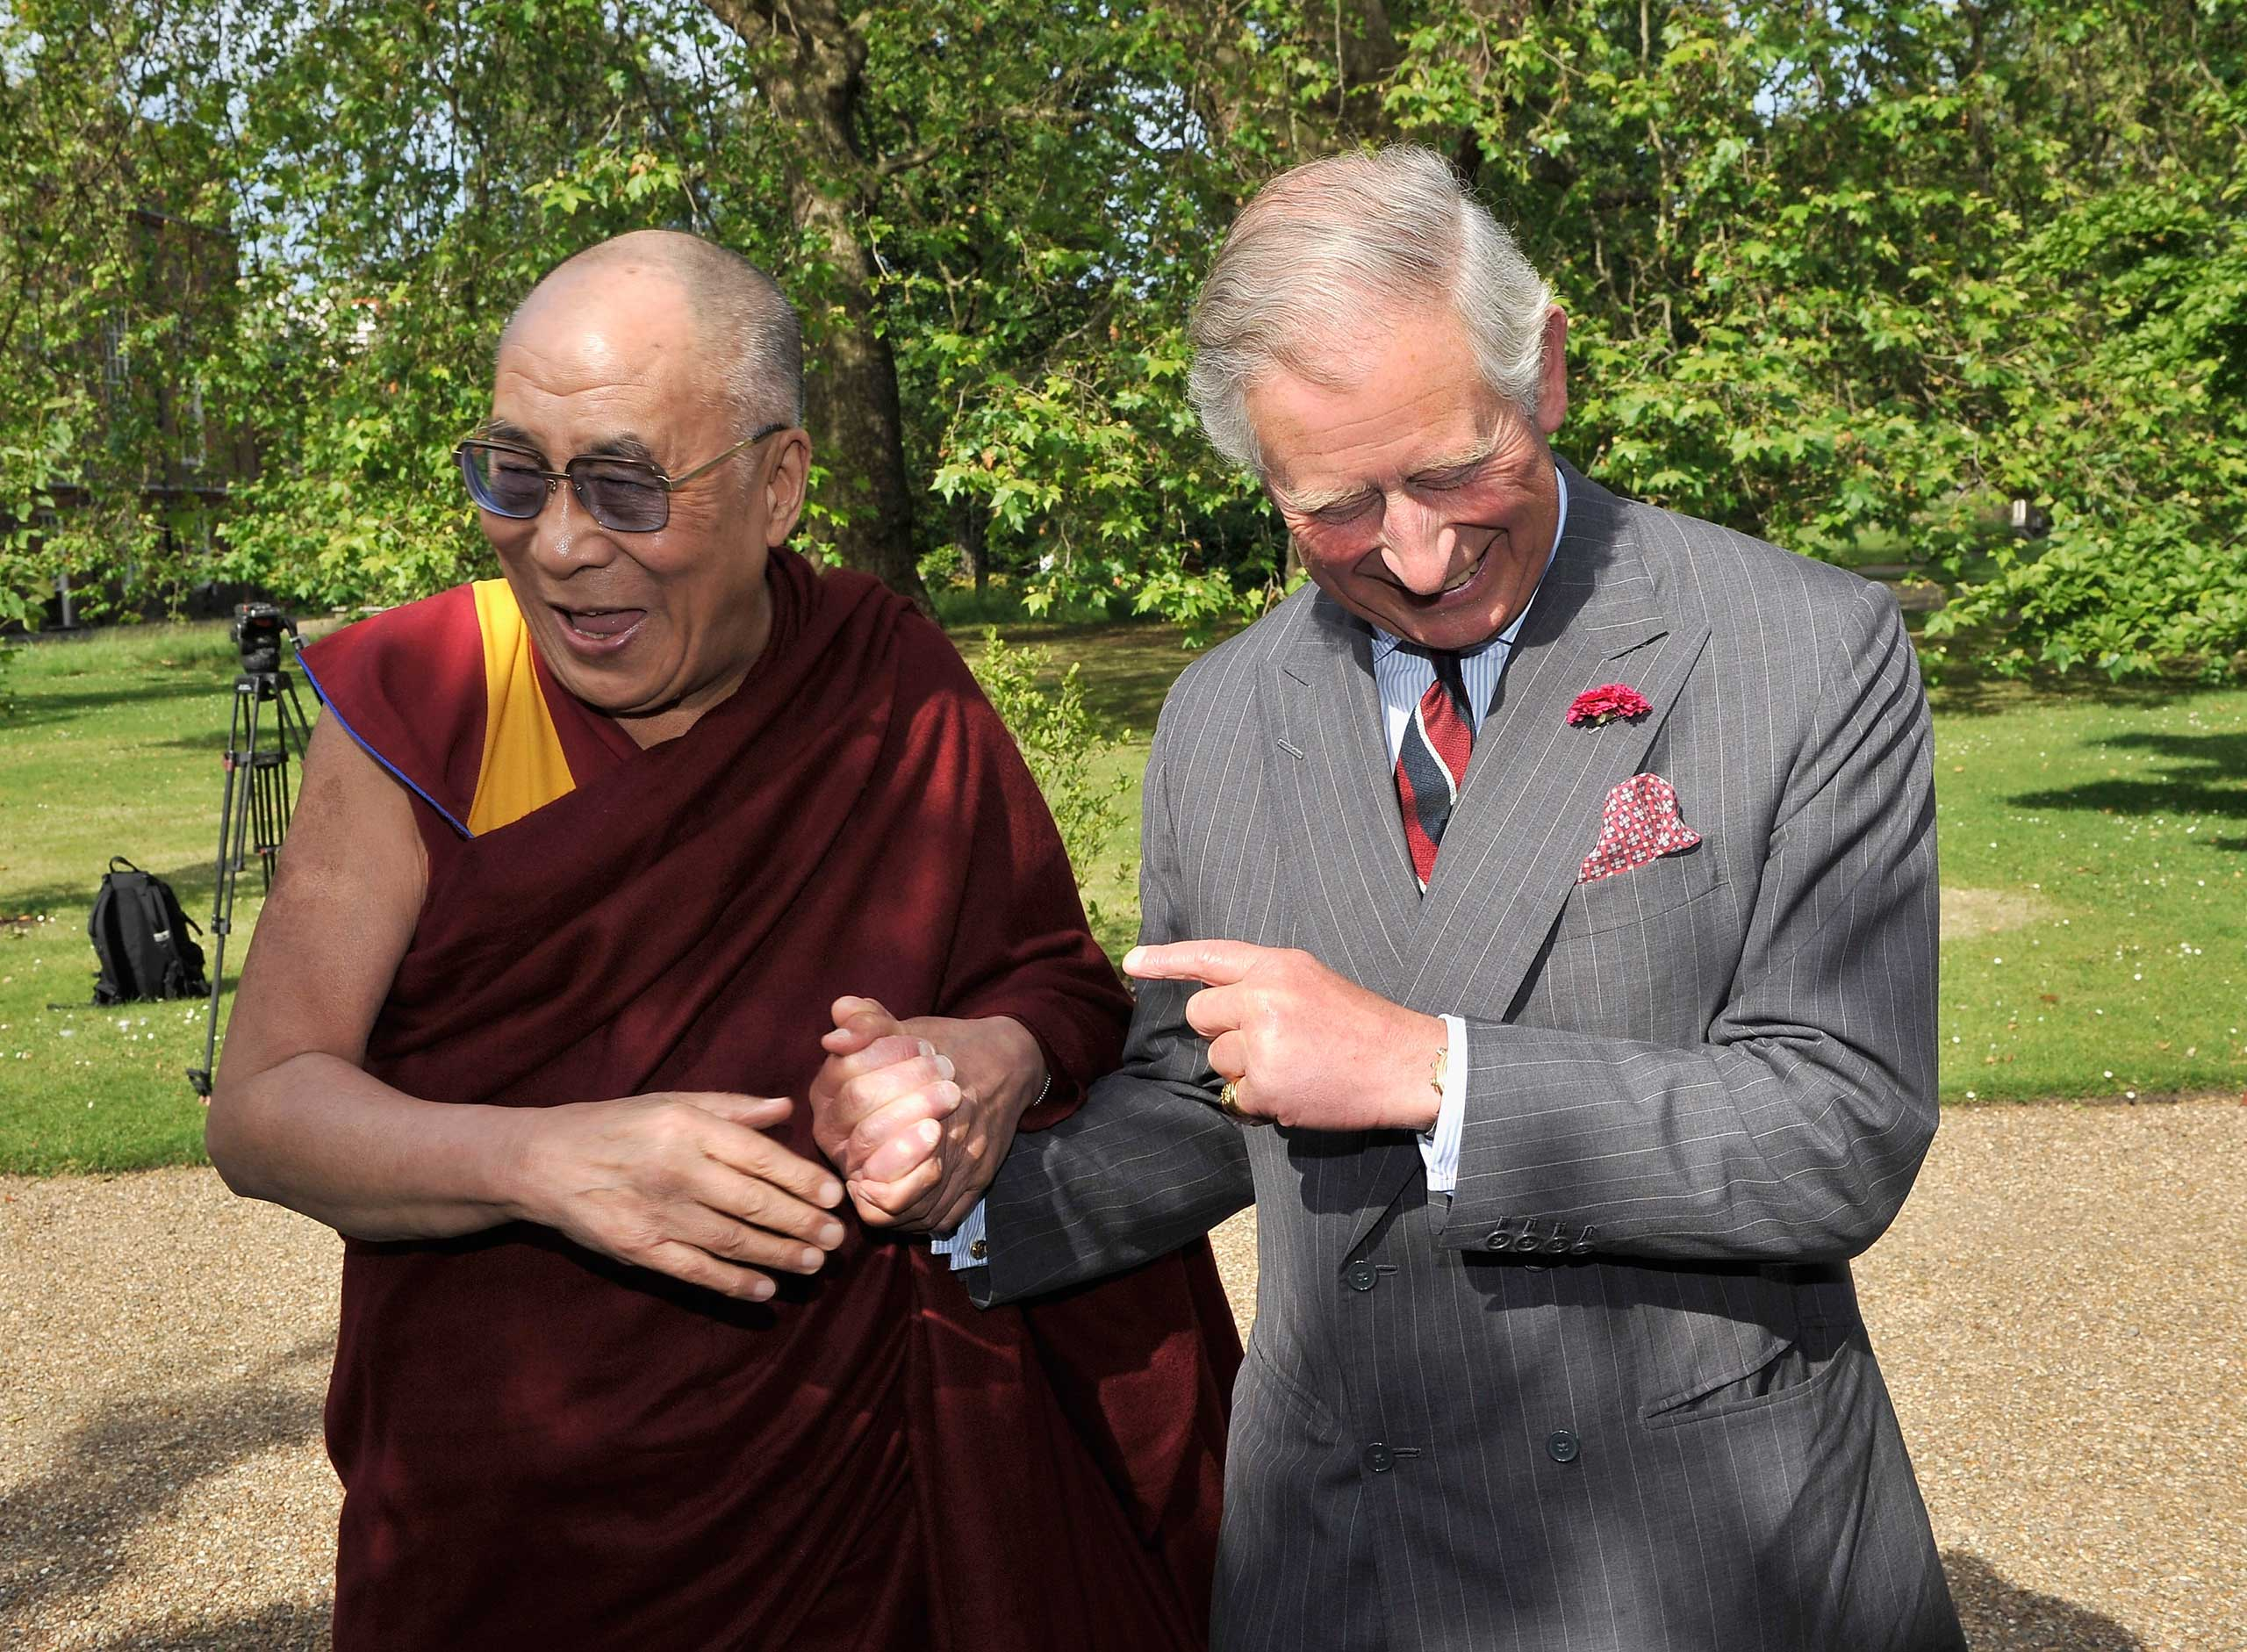 Prince Charles receives the Dalai Lama at Clarence House in London in June 2012.